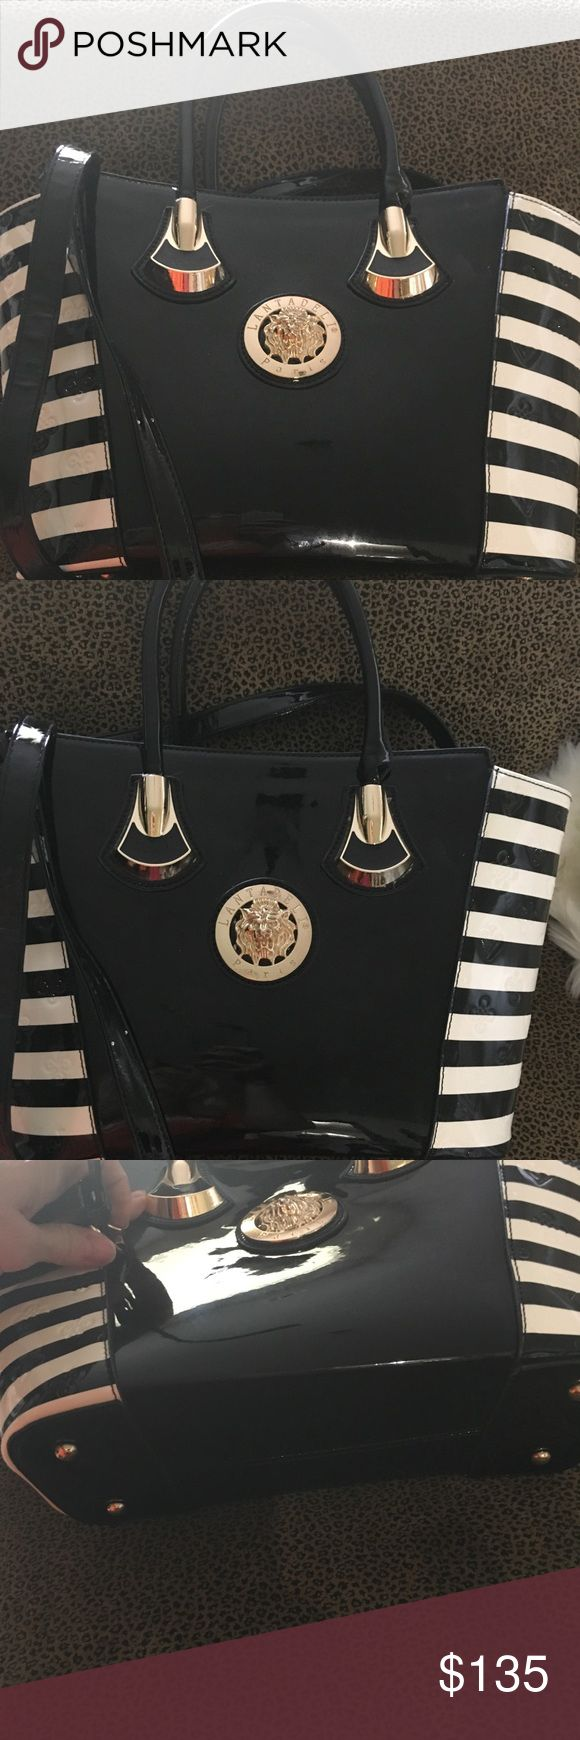 Lantadeli Paris black and cream handbag Lantadeli Paris black and cream striped, stamped and solid patent tote with gold hardware short and long shoulder straps and black interior. I purchased this bag in Canary Islands, Spain at a Boutique. Lantadeli Paris Bags Satchels